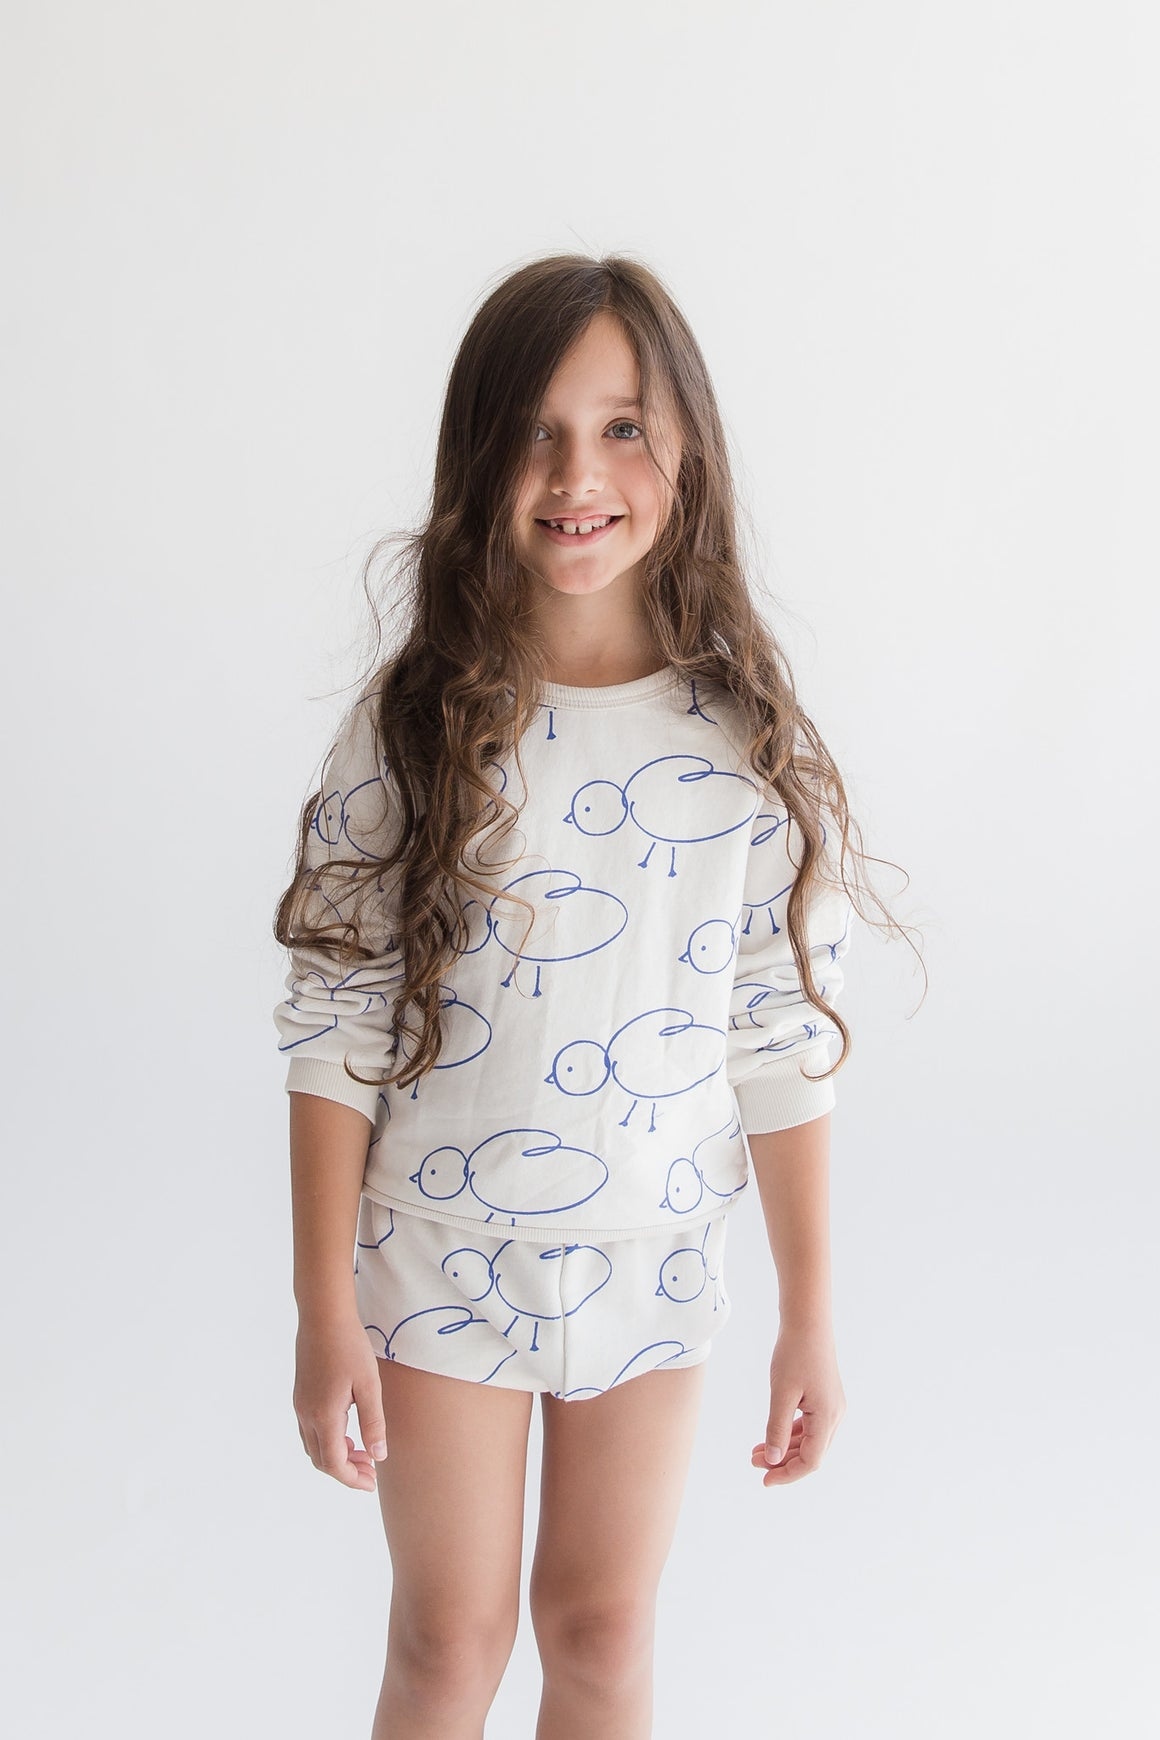 KID + KIND 'Hatched' Basic Sweatshirt - Last One!! Size: 12-18M